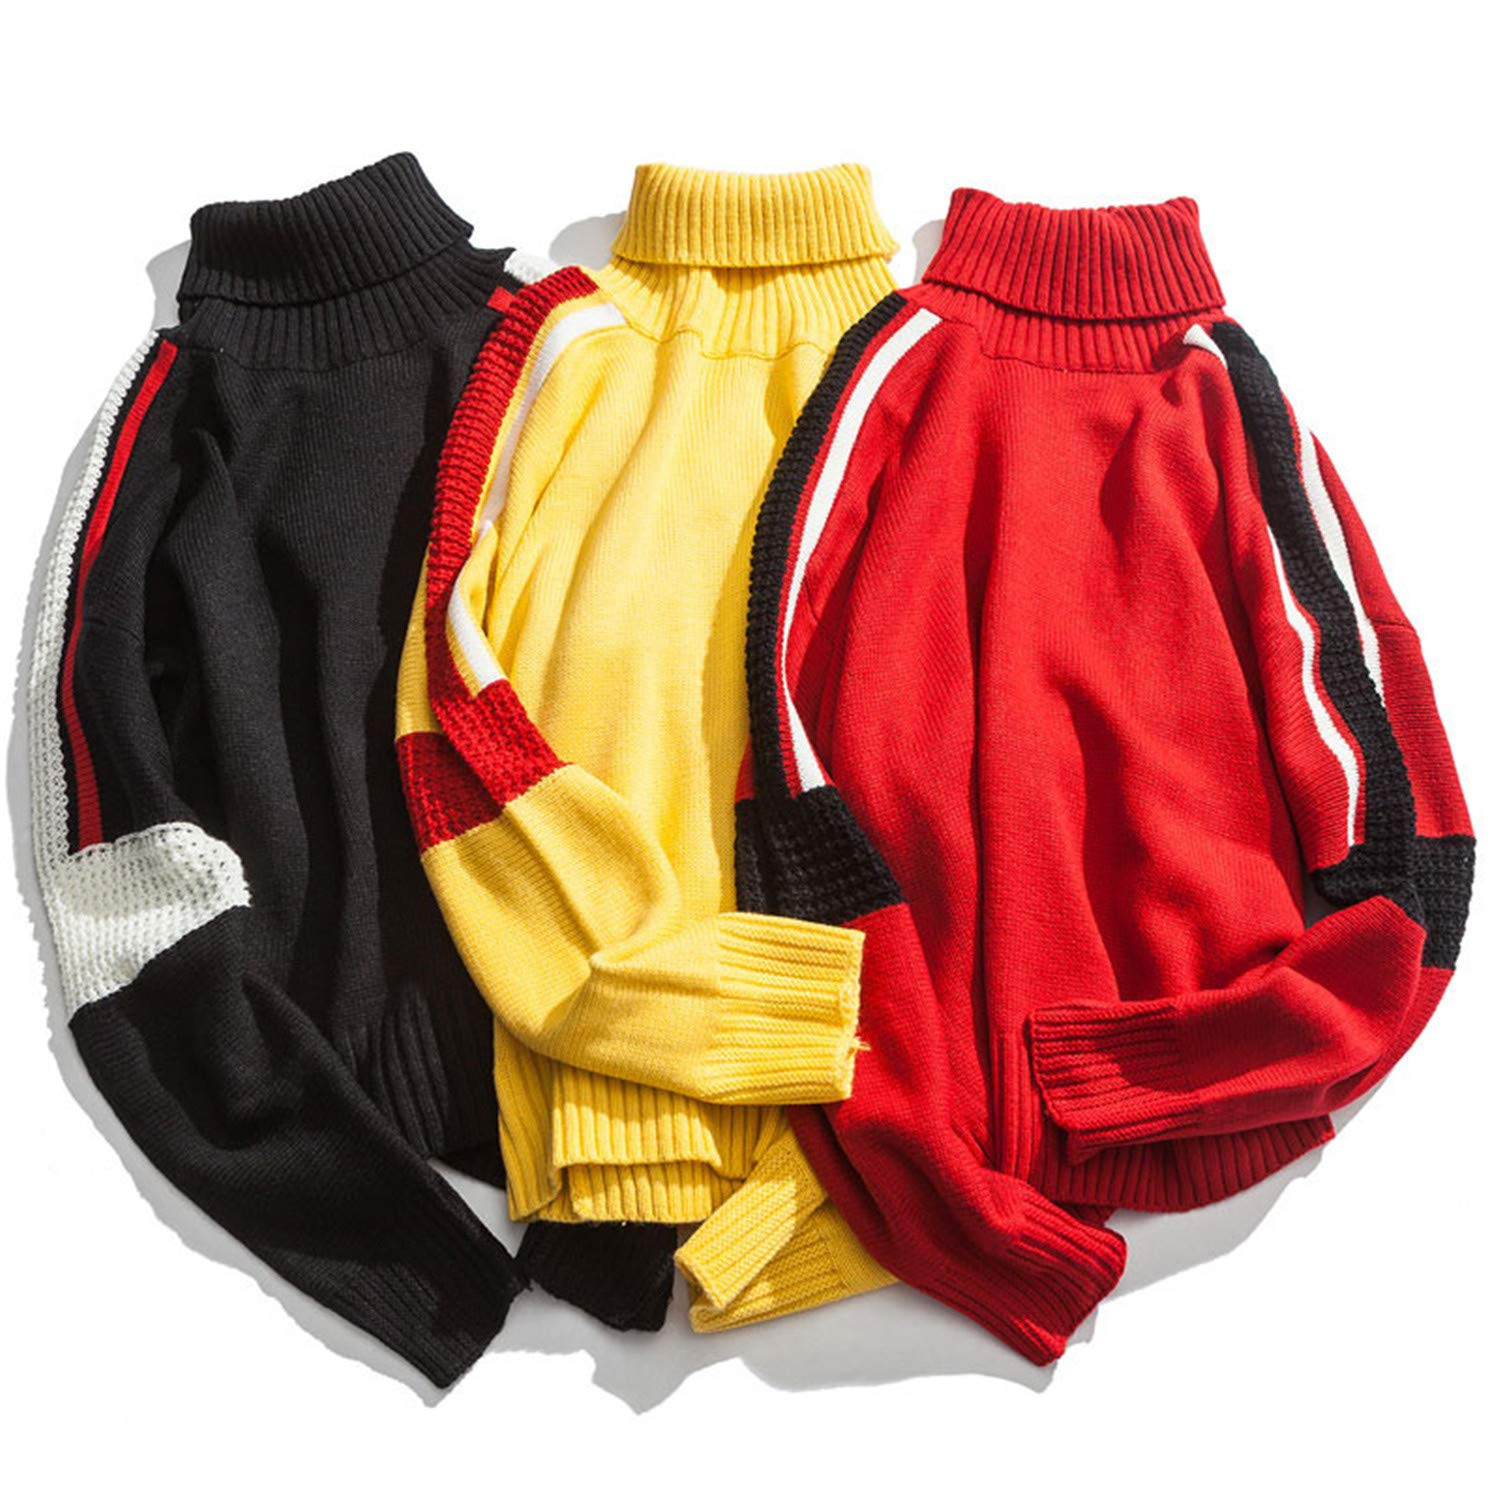 Thadensama Color Block Patchwork Turtleneck Knitted Sweaters Casual Pullover Sweater Fashion Hip Hop Knitwear